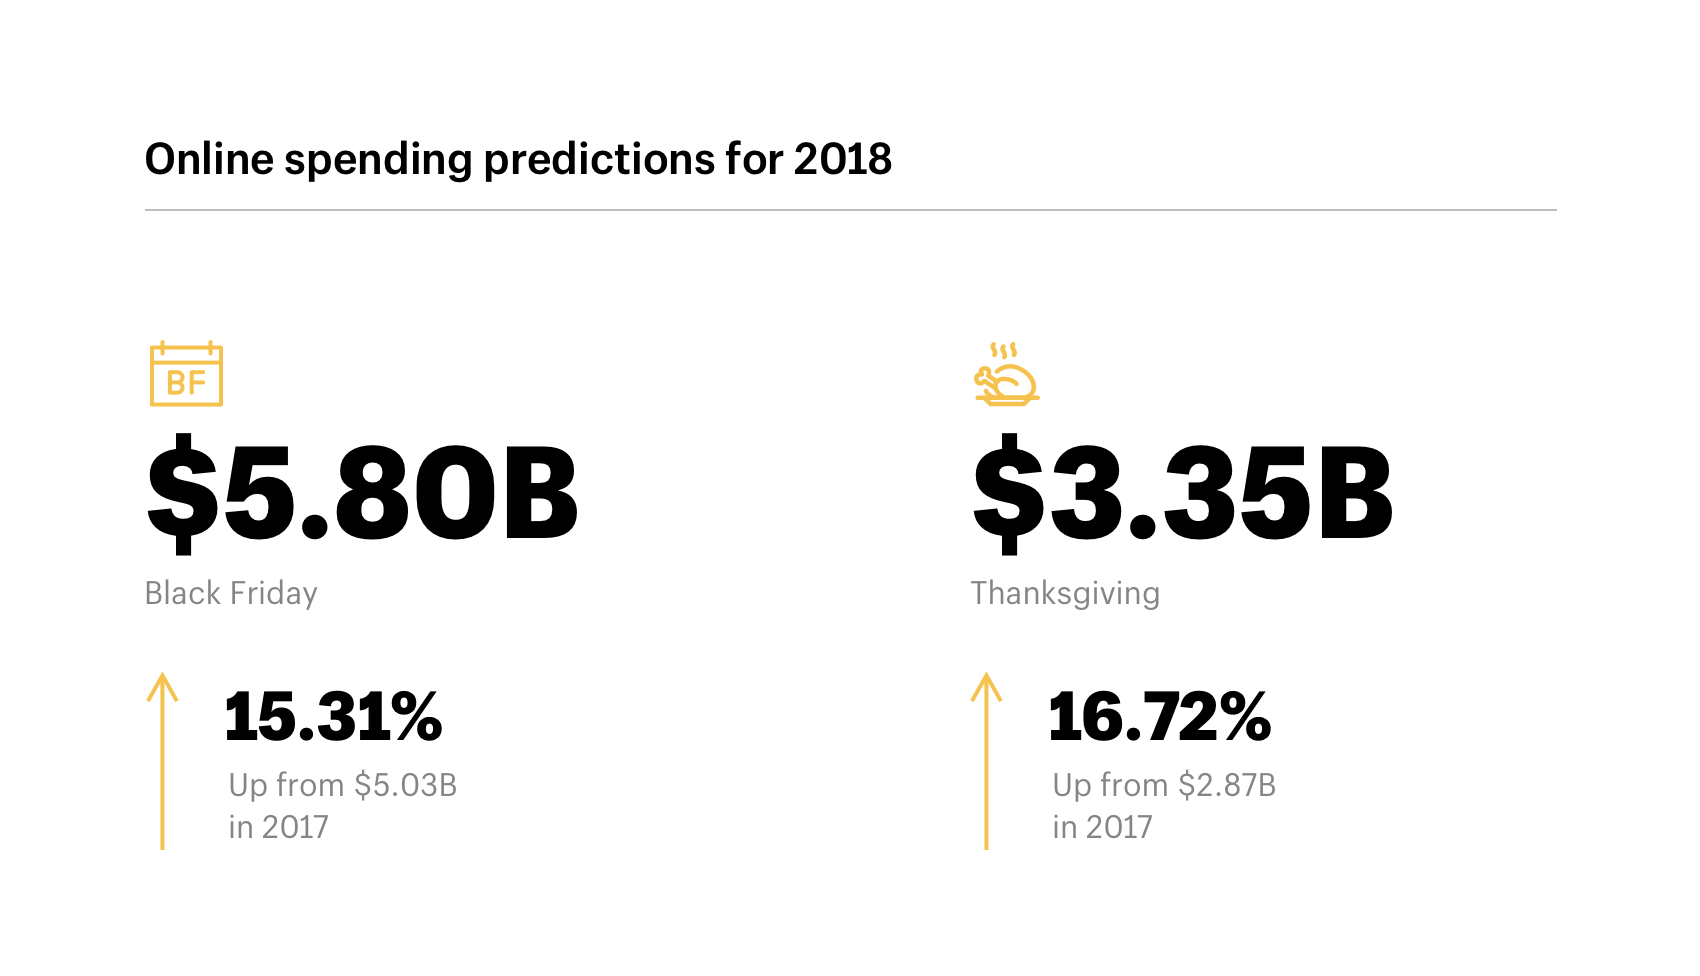 Online holiday spending predictions for 2018